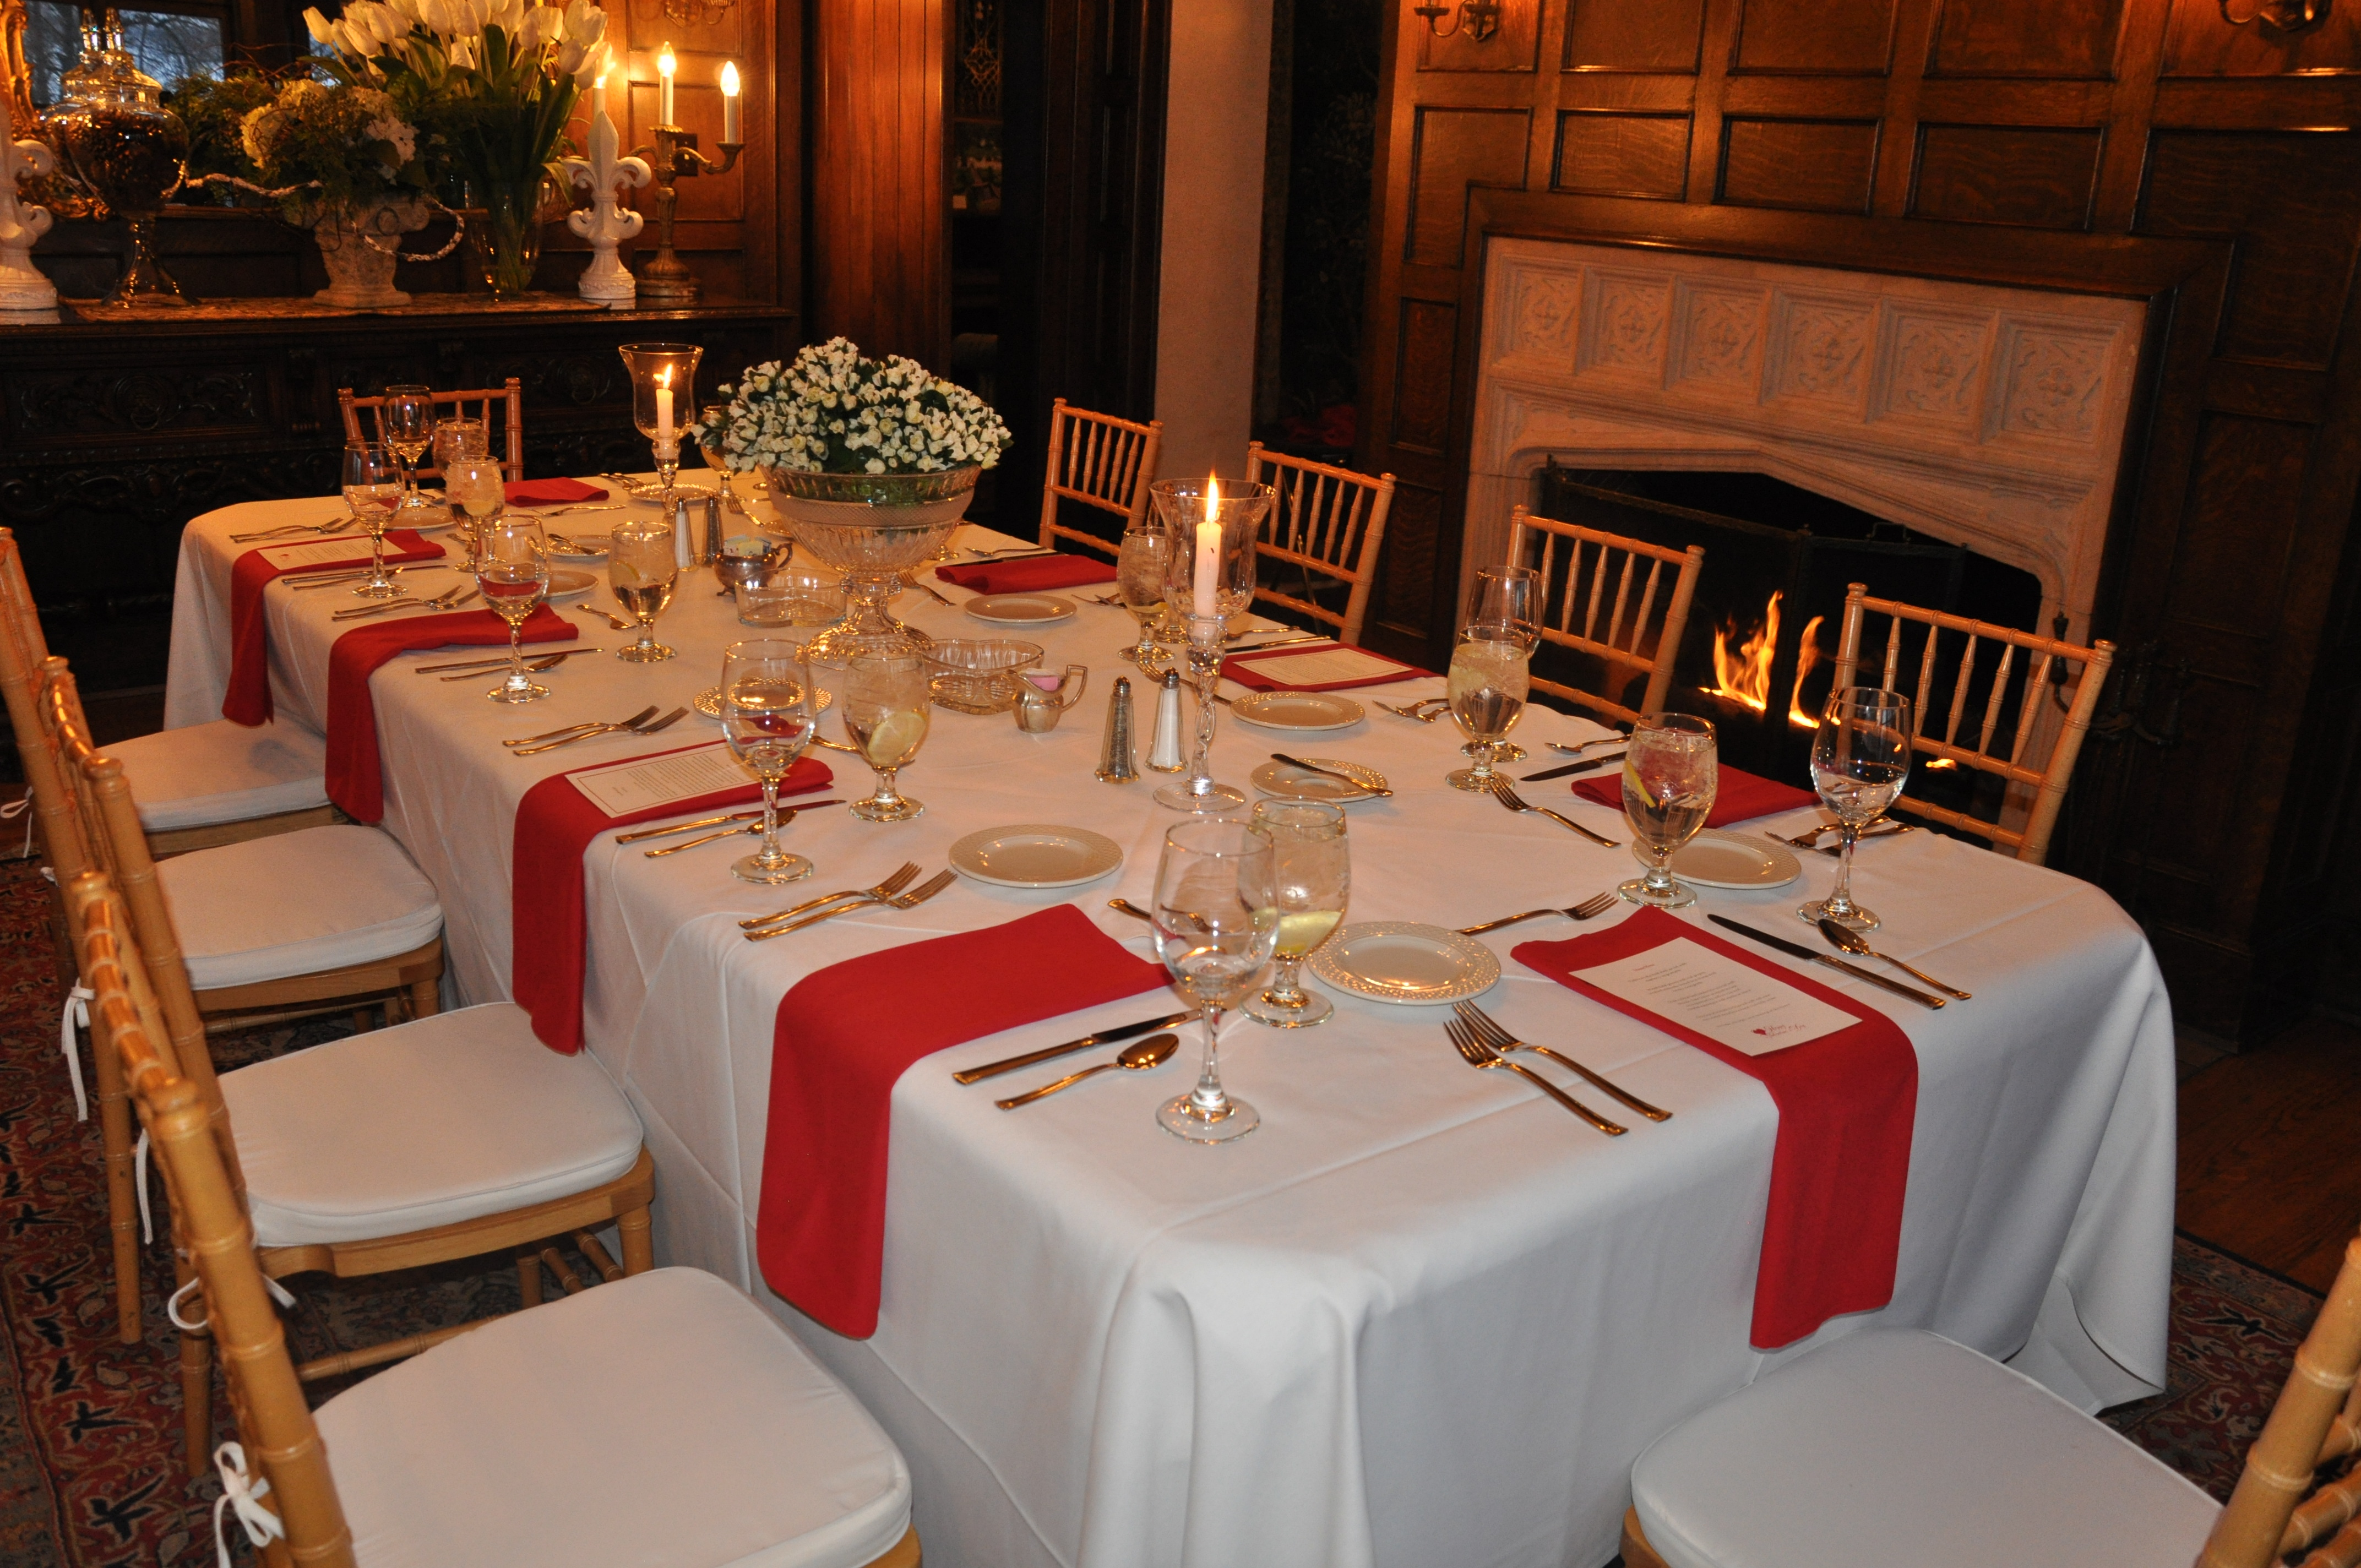 Valentineu0027s Dinner Table Setting Within The Manor House Dining Room